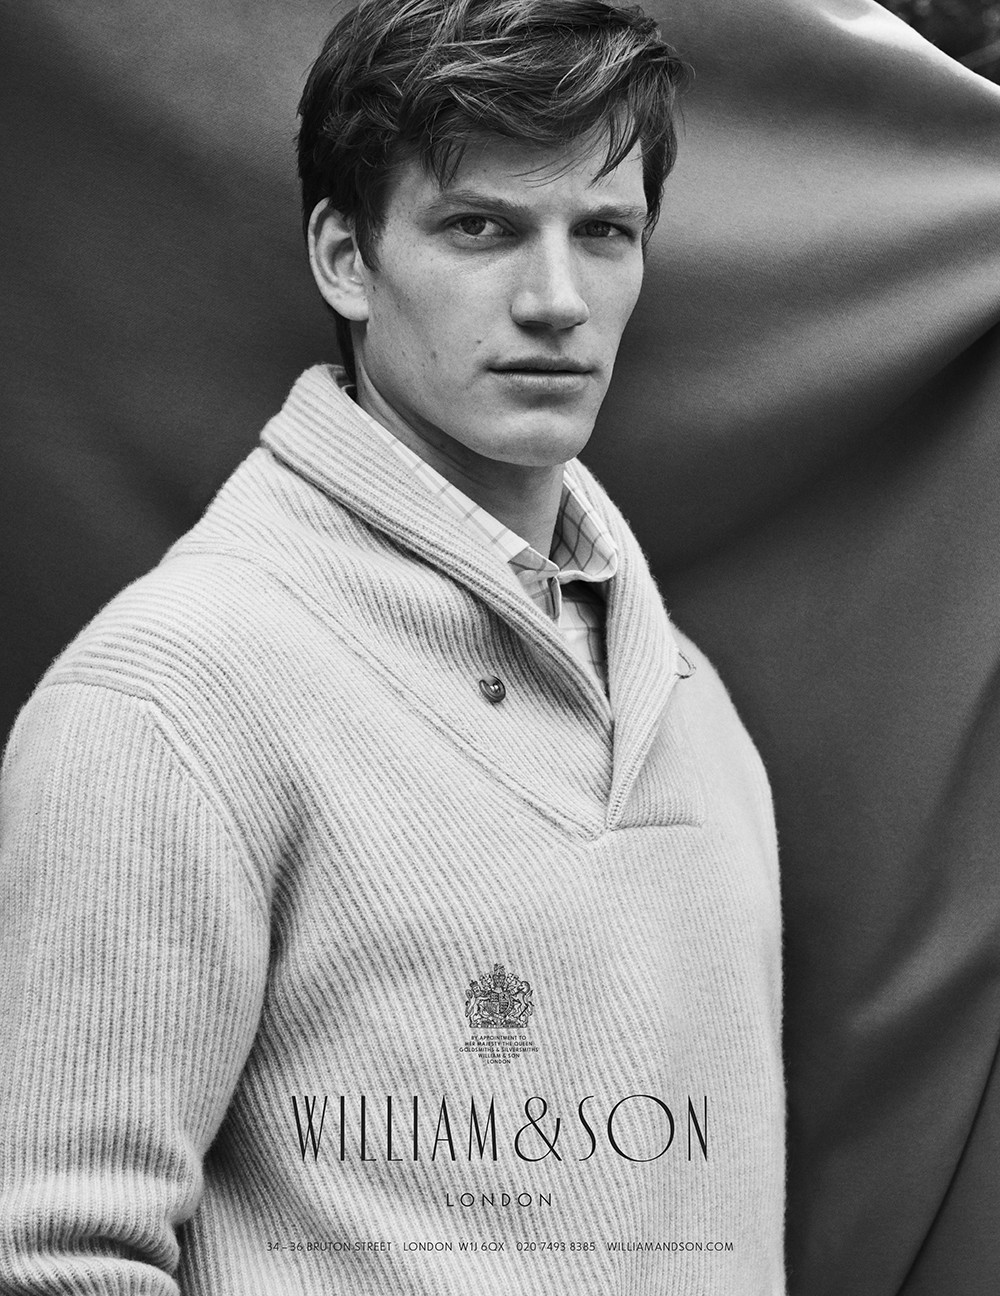 WILLIAM 8 SONS COUNTRY CLOTHING '16 - PAUL WETHERELL